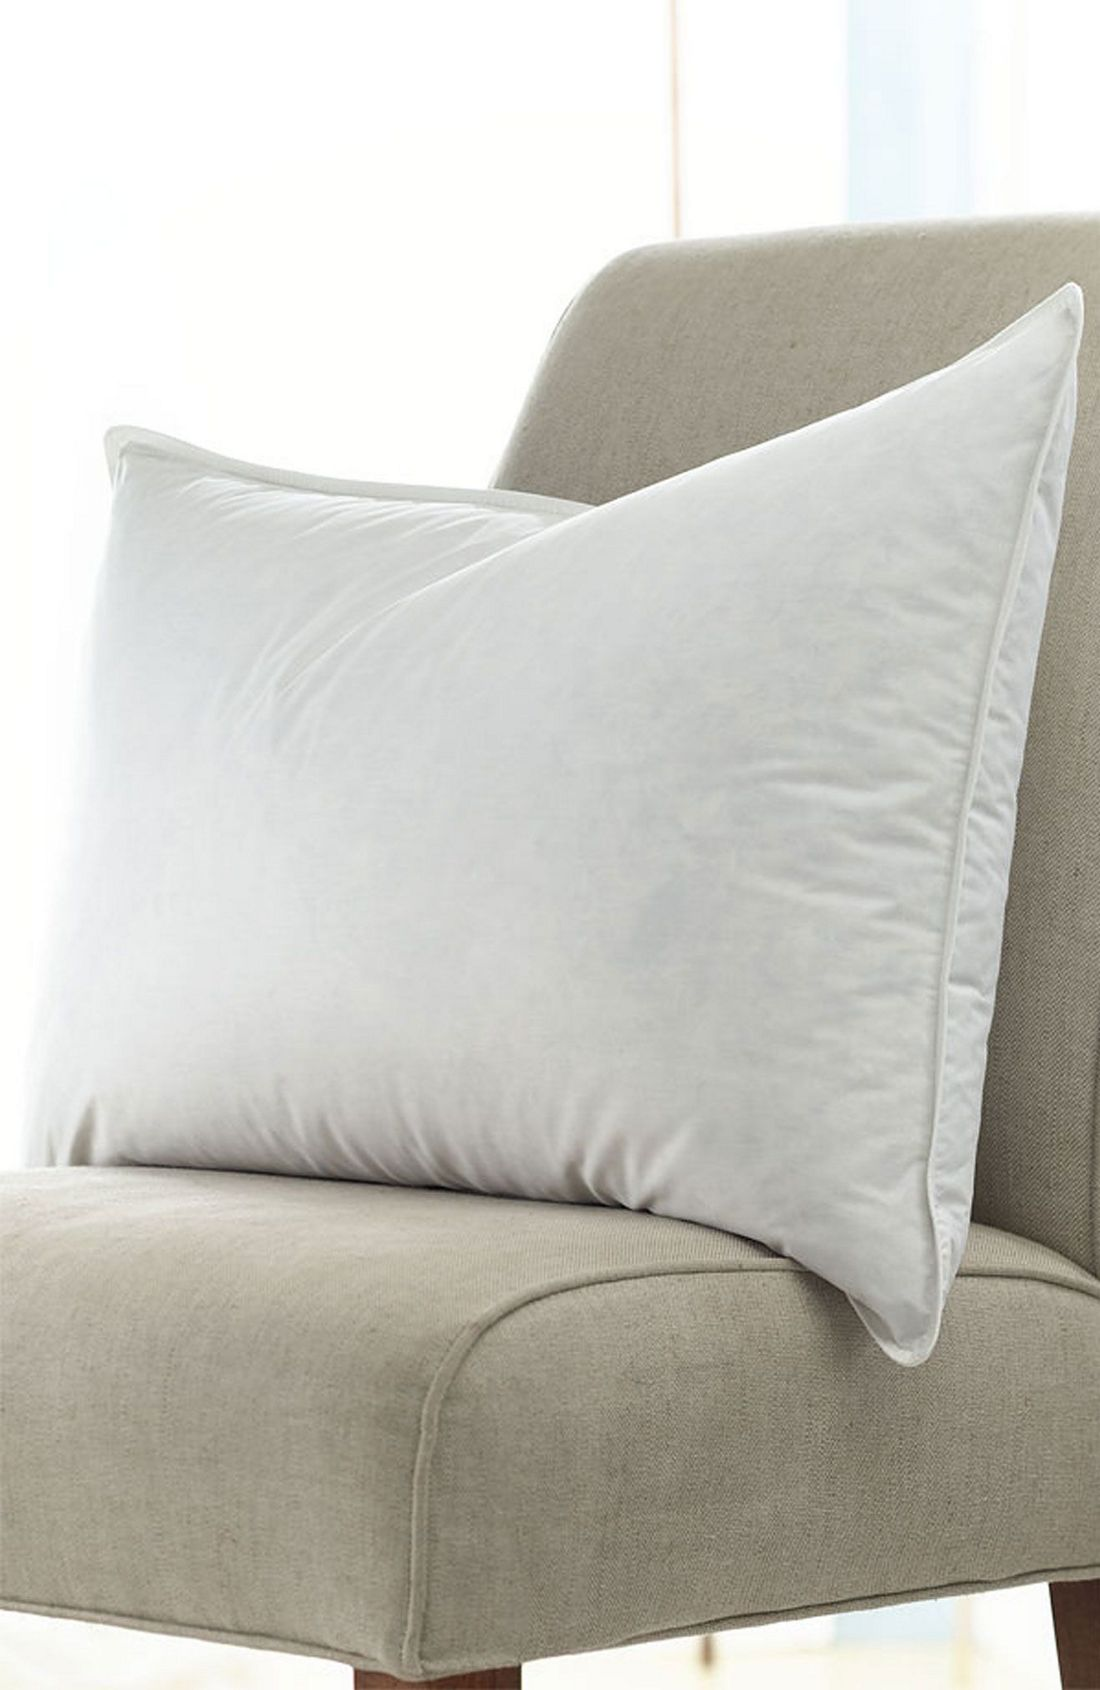 Westin At Home 'Home Collection' Hypoallergenic Pillow | Nordstrom